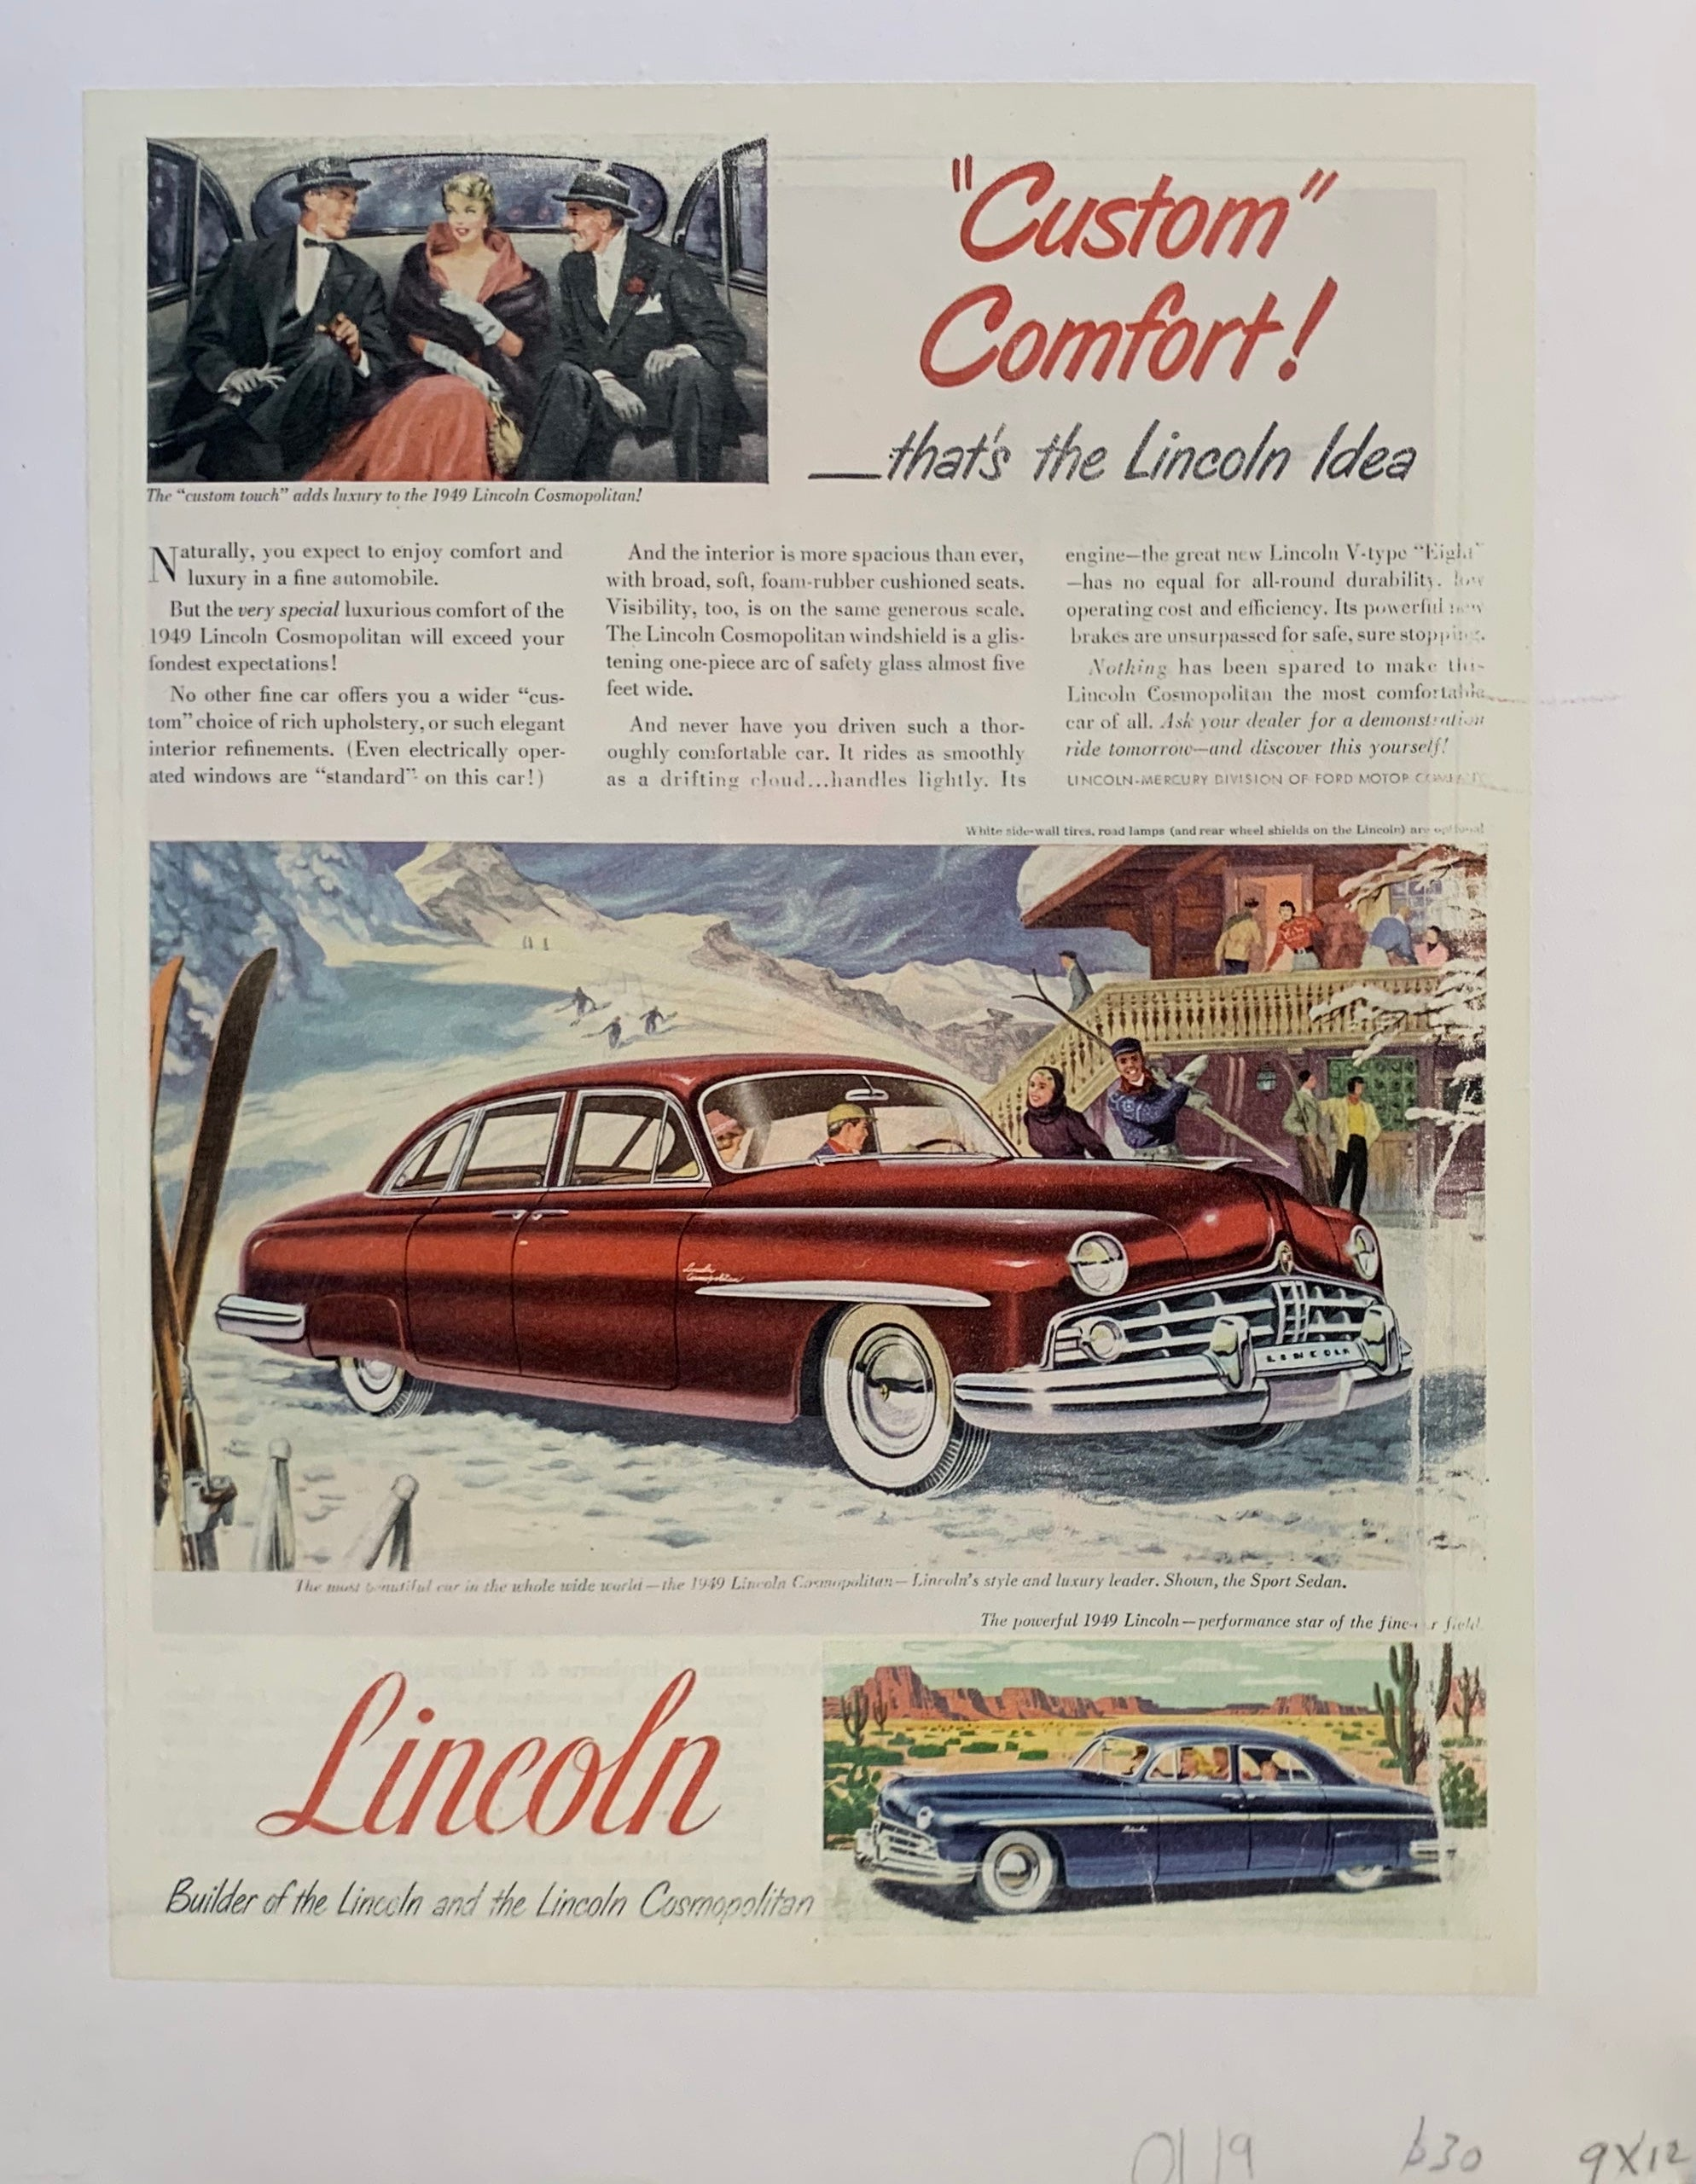 The '49 Lincoln Cosmopolitan Custom Comfort Ski Lodge